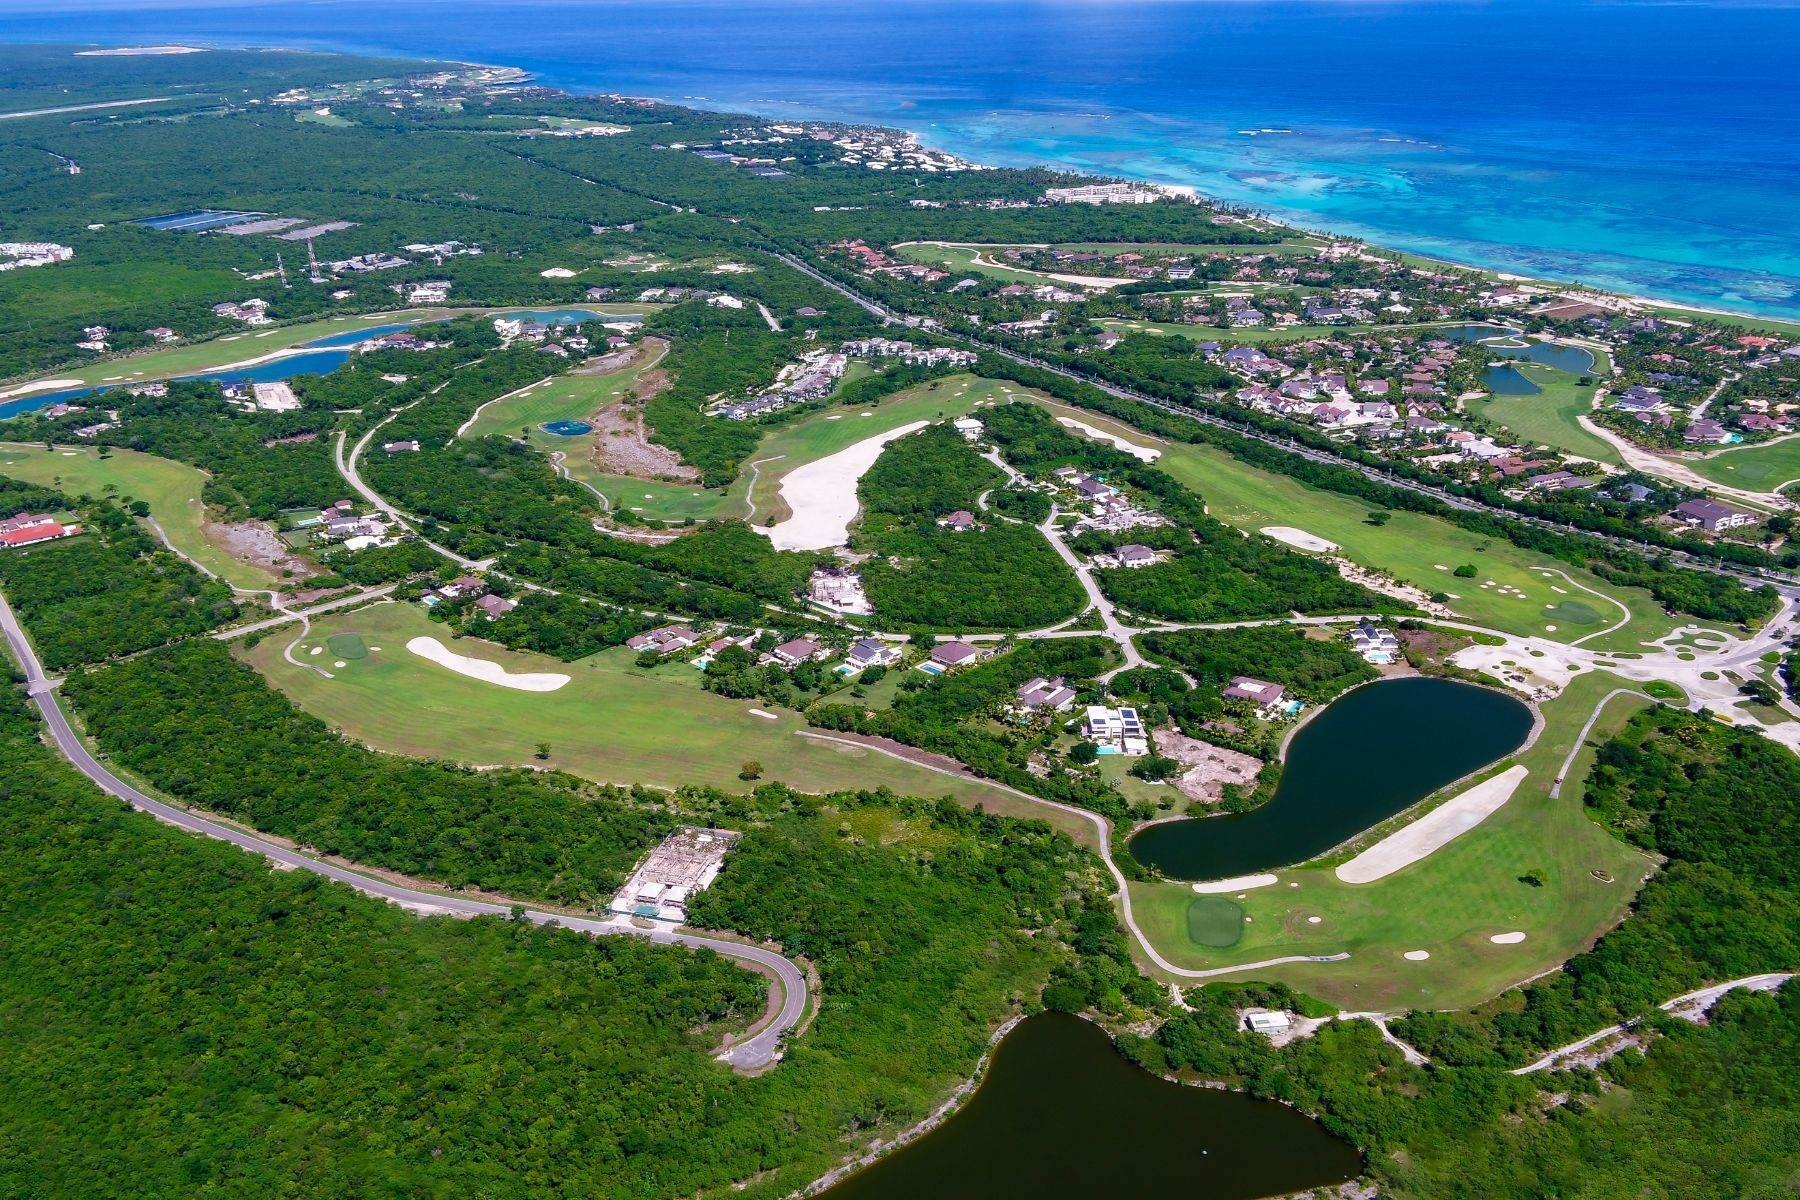 Land für Verkauf beim Hacienda # C-28 – East-Facing Golf View Parcel close to the Beach Hacienda # C-28, Punta Cana Resort Punta Cana, La Altagracia 23000 Dominikanische Republik